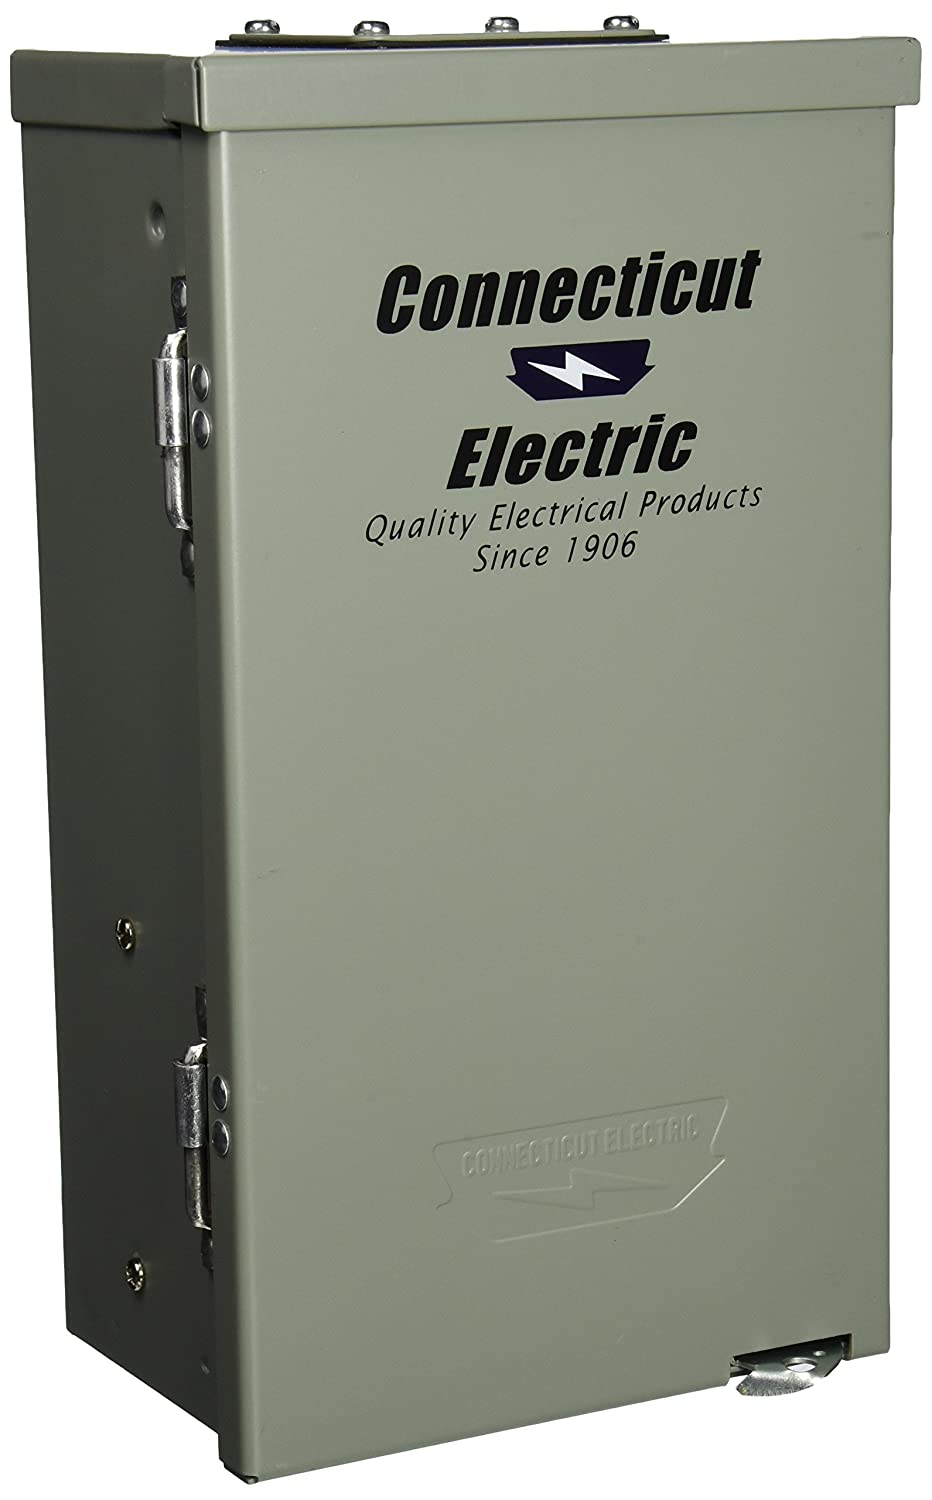 Connecticut Electric Cesmpsc55grhr 50 Amp Rv Pnl With 20 Gfci Breaker What Should Be Used A Or Is 15 Receptacle Receptacles